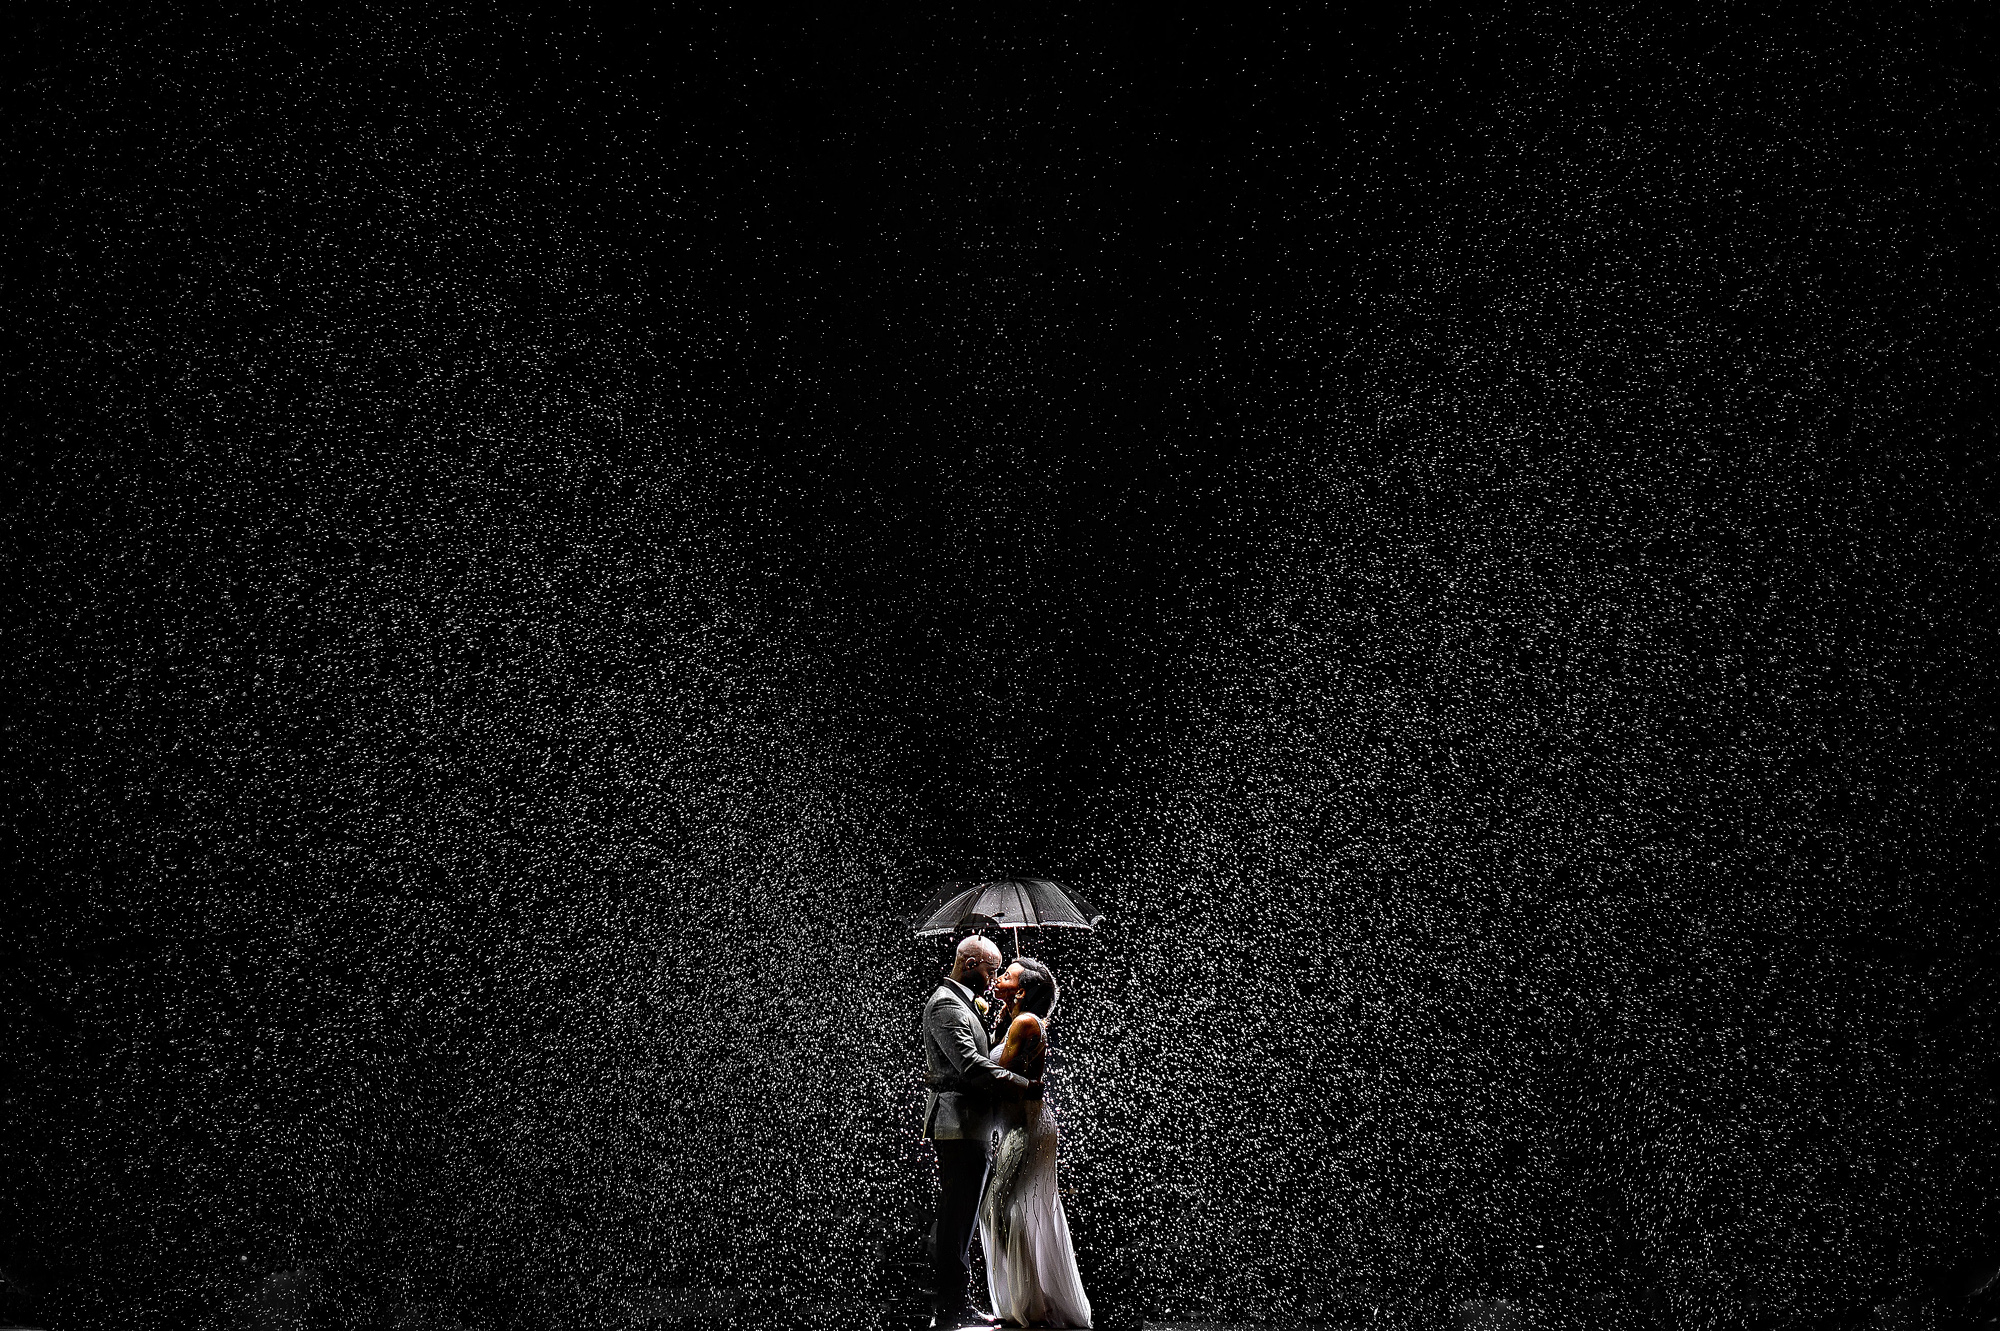 50 best wedding photo concepts - portrait under umbrella in the rain  by Joshua Dwain Photography